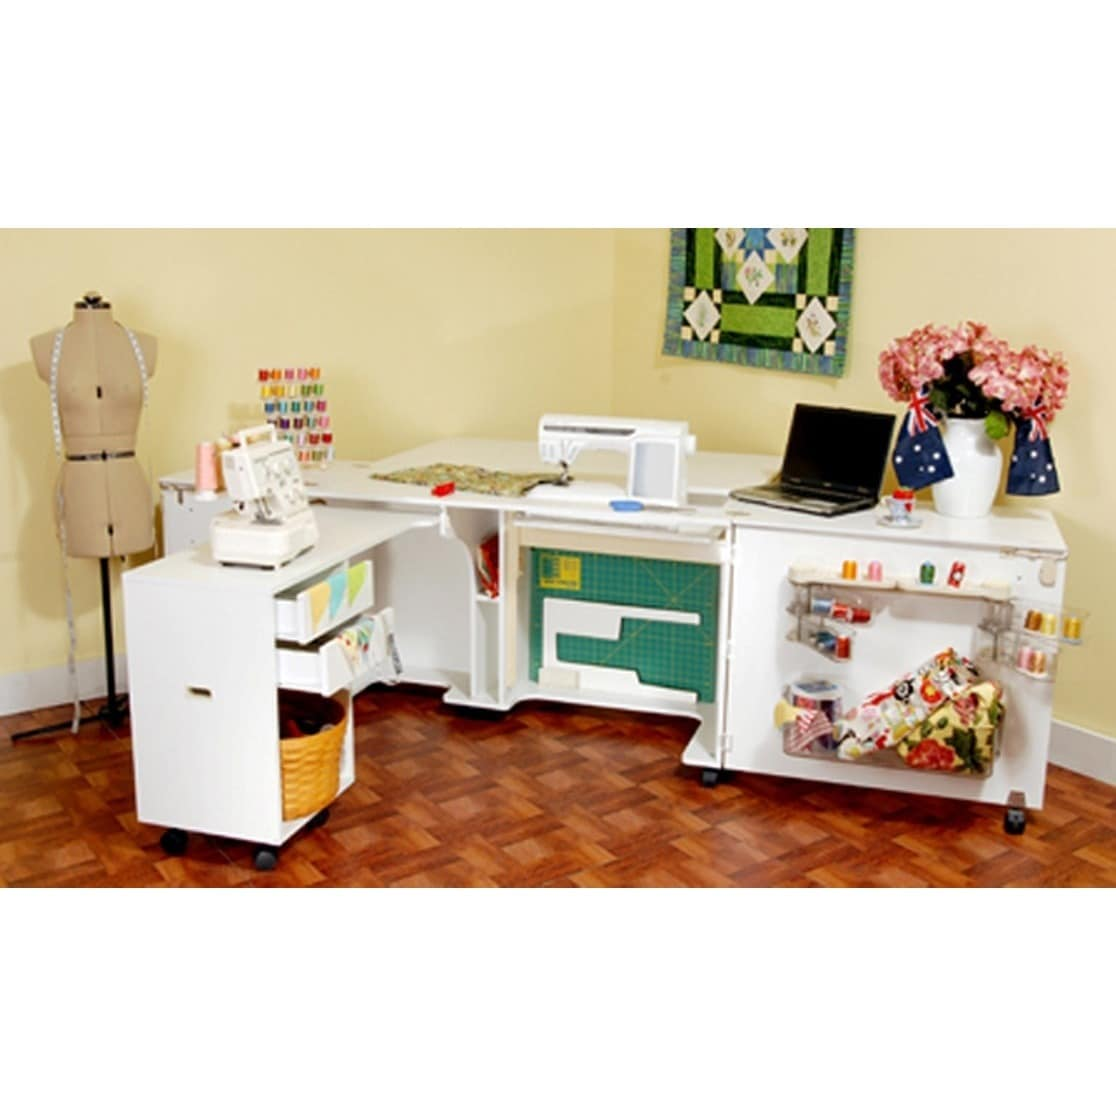 Shop Kangaroo Kabinets Aussie Sewing Machine Table Furniture Storage Diagram Car Interior Design Cabinet Free Shipping Today 6504676